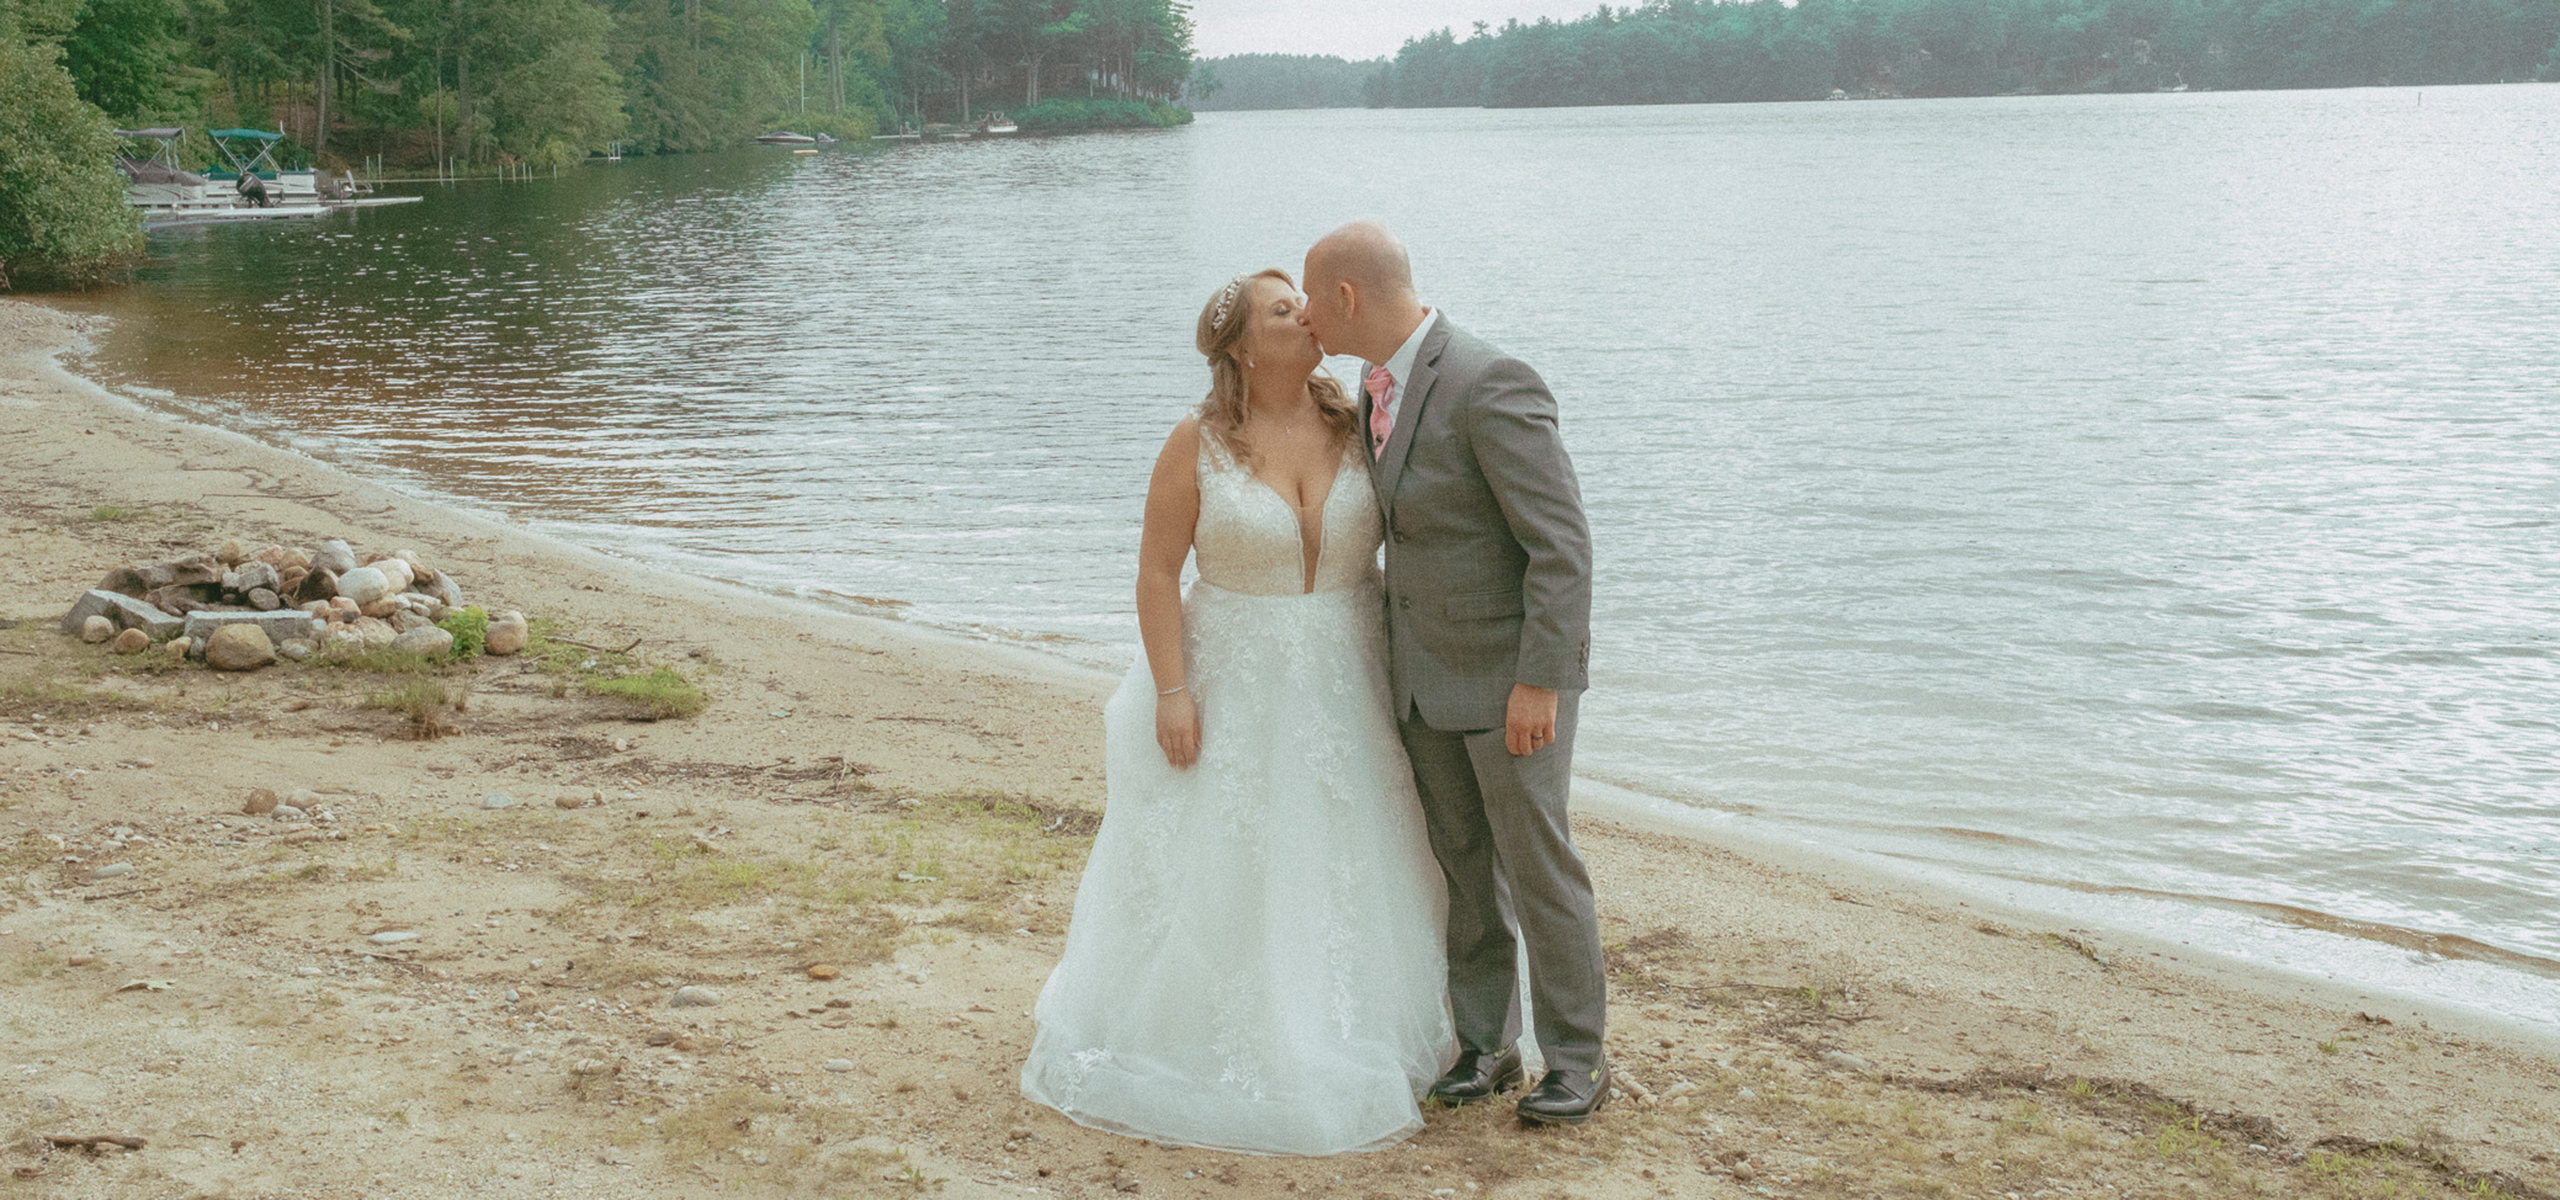 Derry New Hampshire Wedding Photography + Elopement Photography